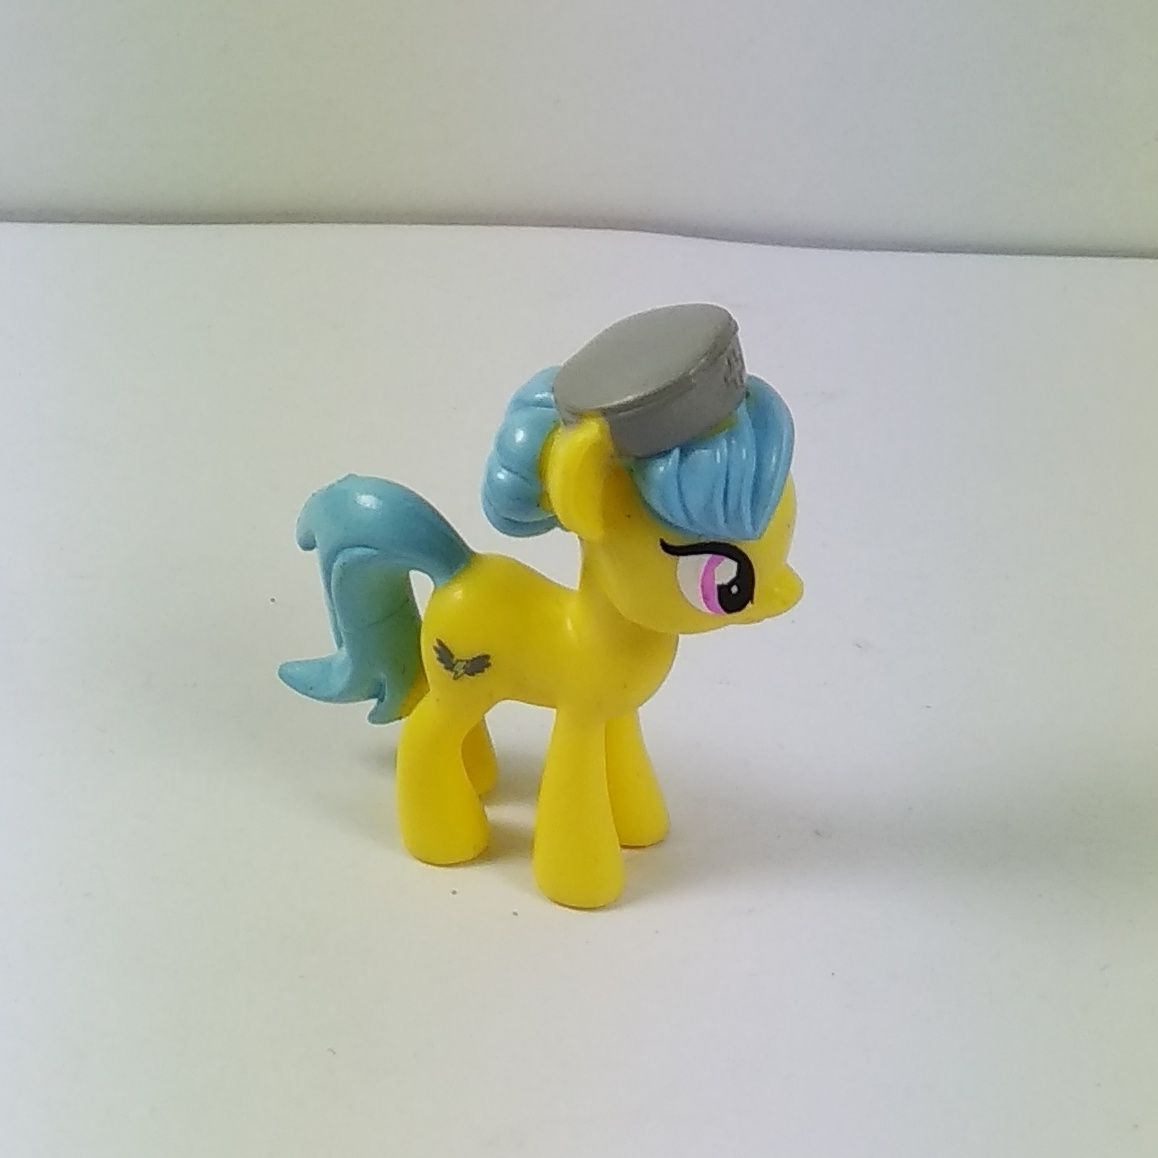 Details about My Little Pony Movie Golden Hooves (Wave 22) Blind Bag  Mini-Figure Doll Toy